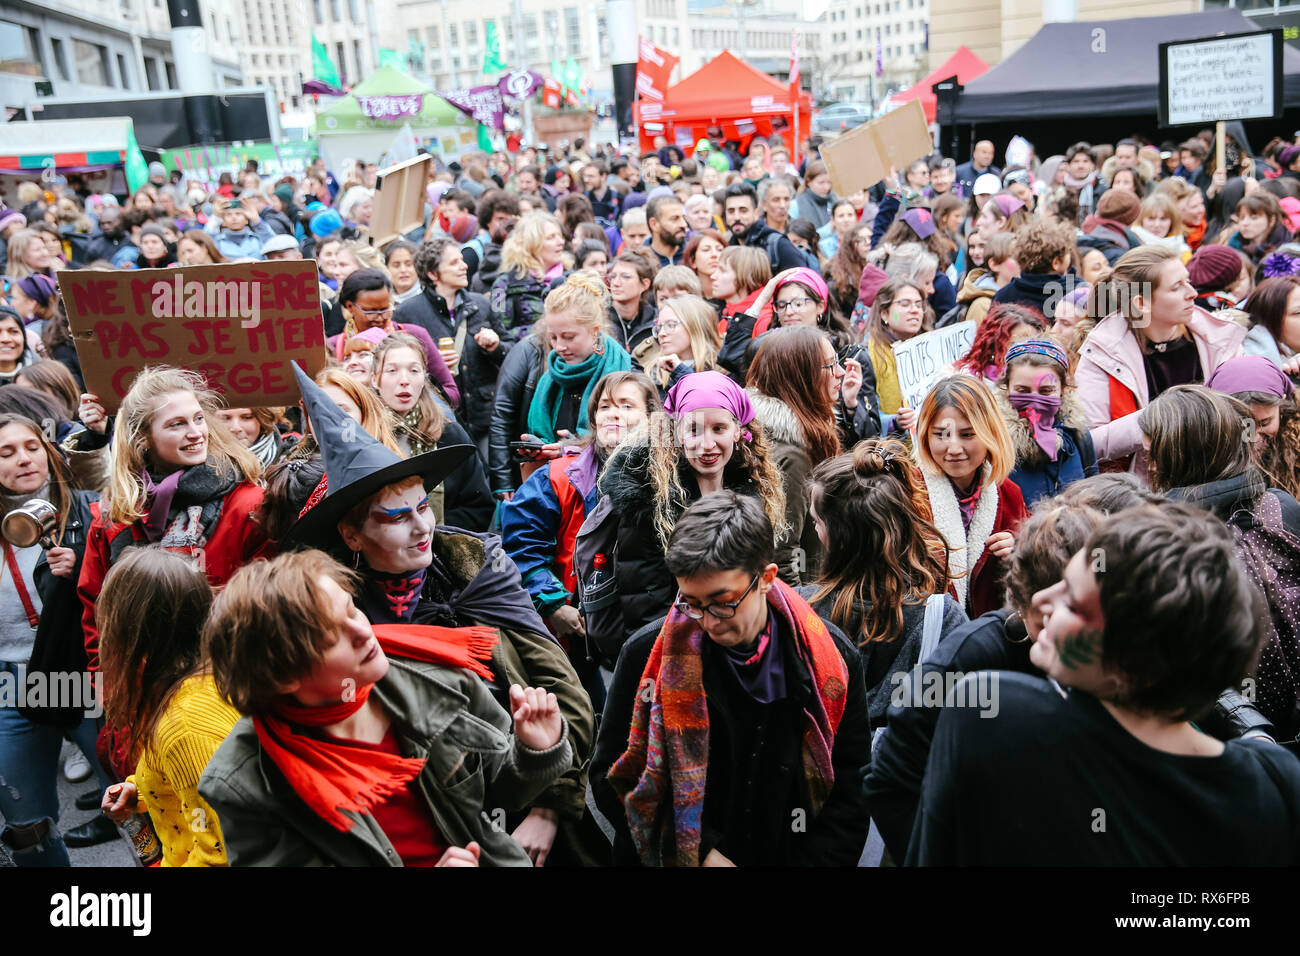 Brussels, Belgium. 8th Mar, 2019. People take part in a women's strike in Brussels, Belgium, March 8, 2019. Thousands of women went on strike across Belgium on International Women's Day to campaign for women's rights and gender equality, local media reported. Credit: Zhang Cheng/Xinhua/Alamy Live News Stock Photo